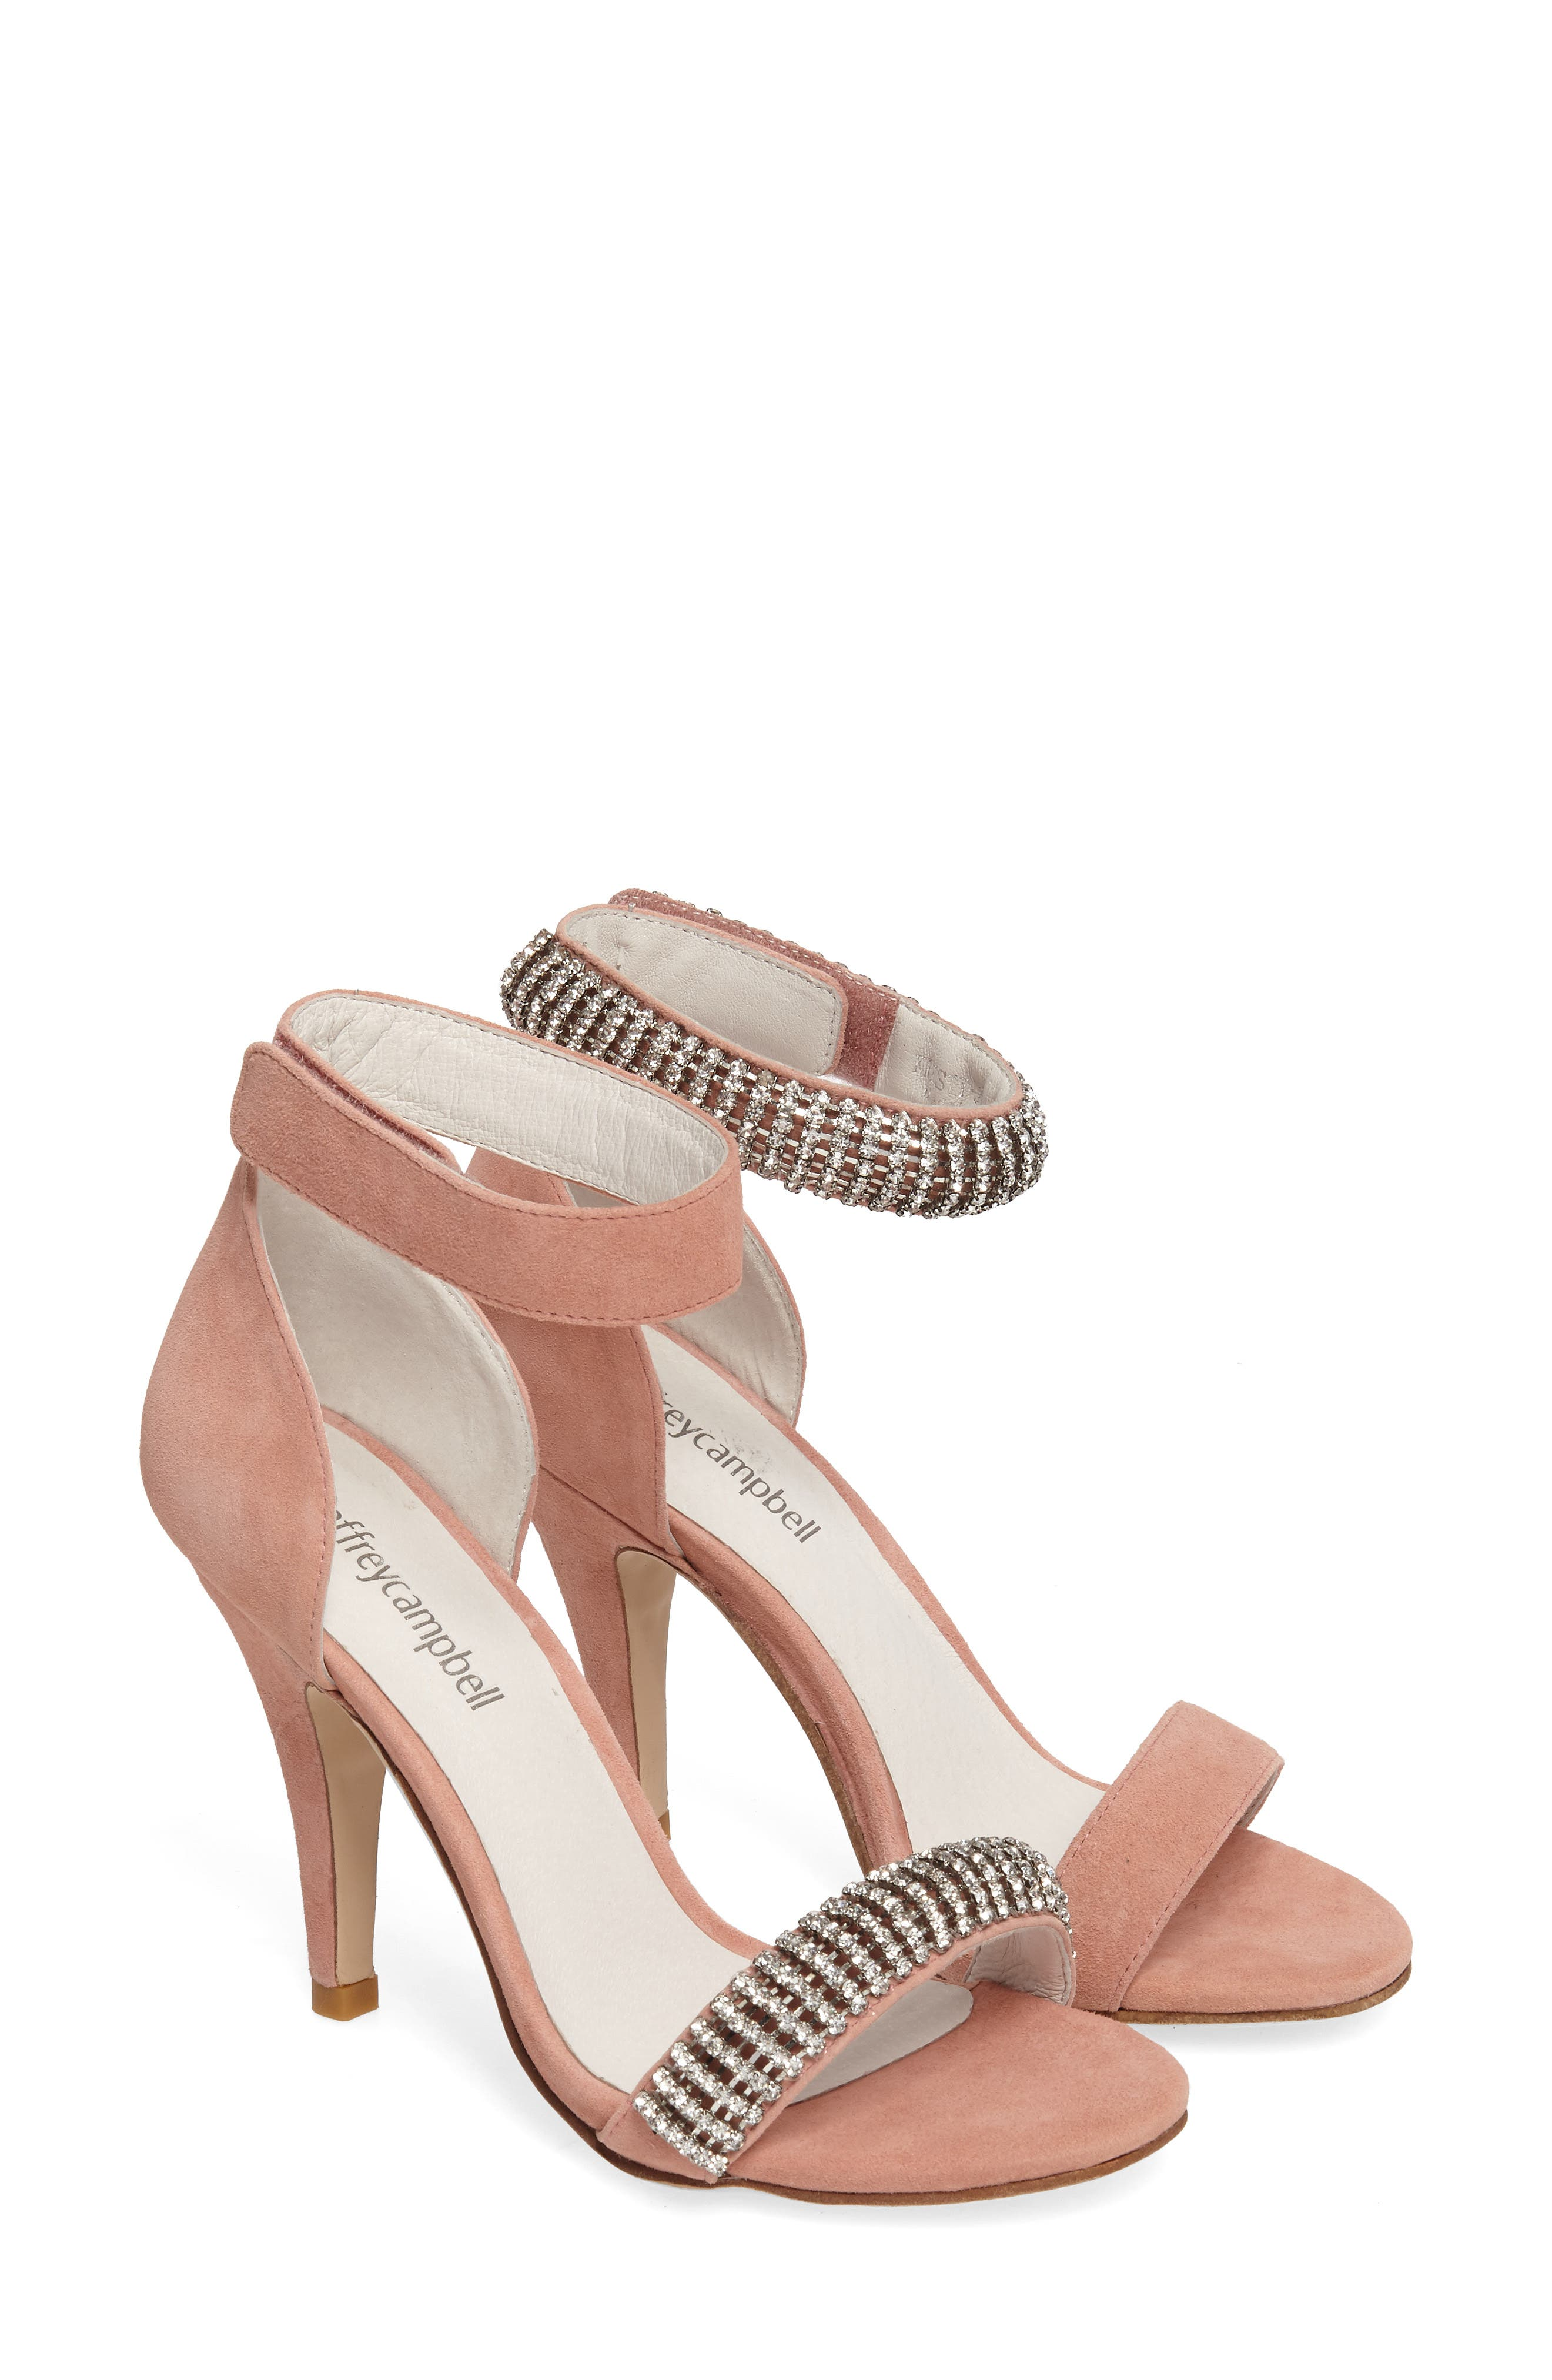 Main Image - Jeffrey Campbell Kristy Ankle Strap Sandal (Women)